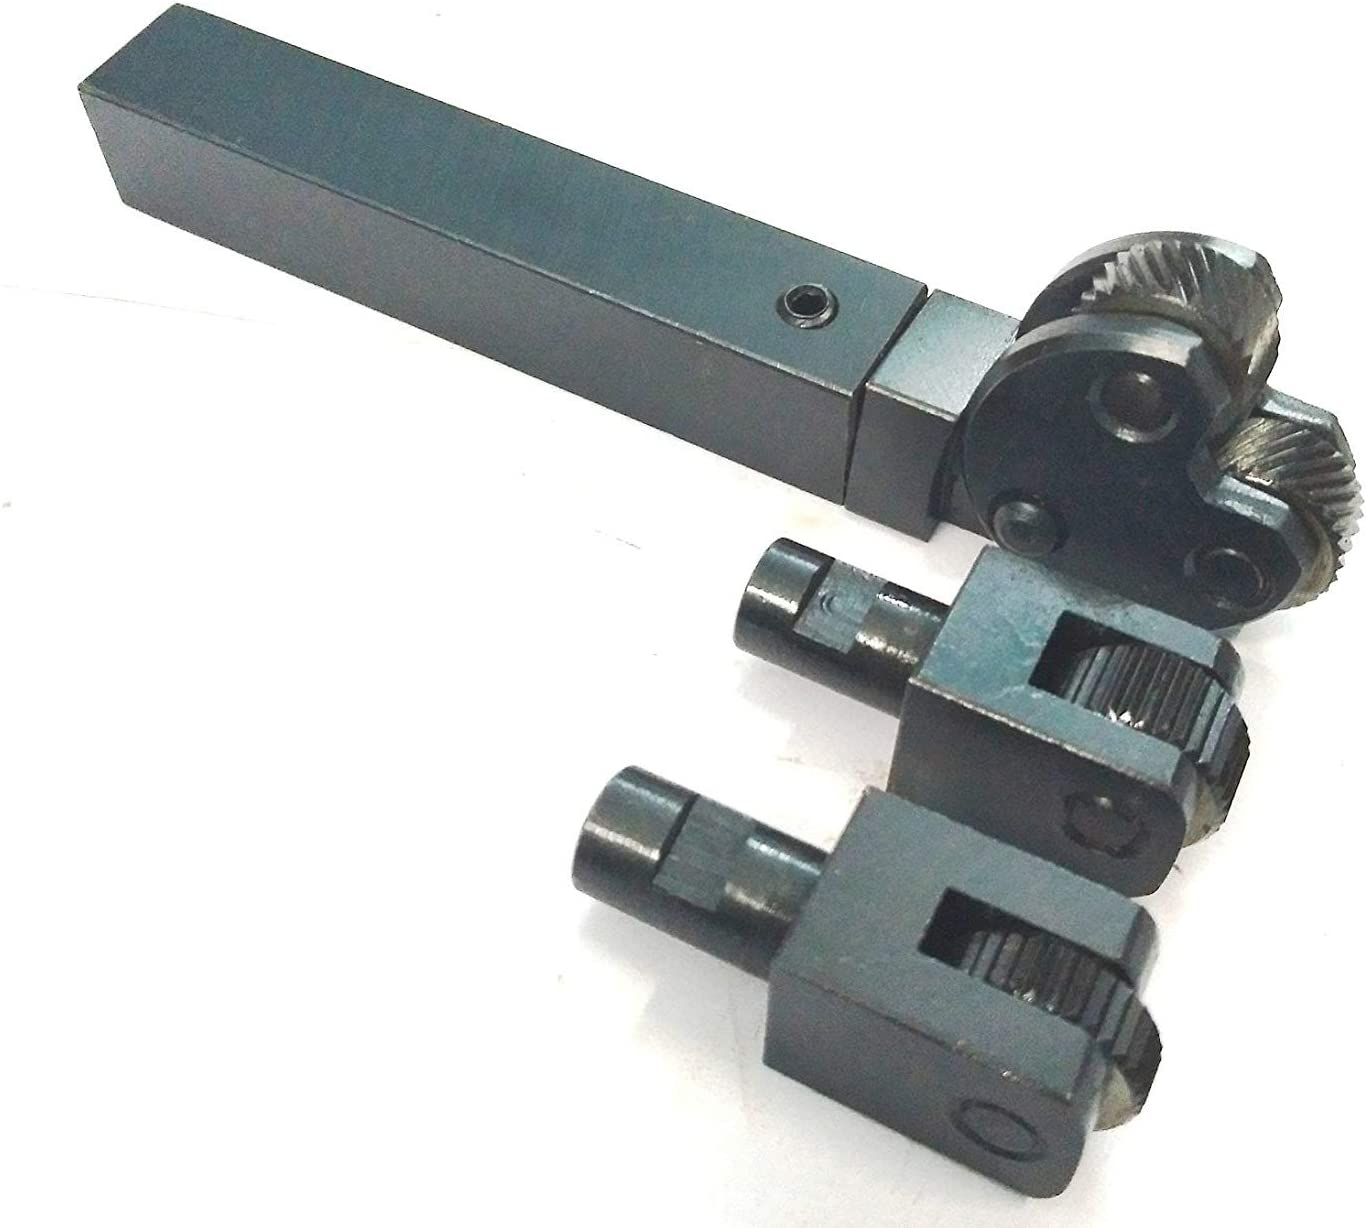 TOOL STEEL INTER-CHANGEABLE HEADS DIAMOND and LINEAR KNURLING TOOL FOR LATHES